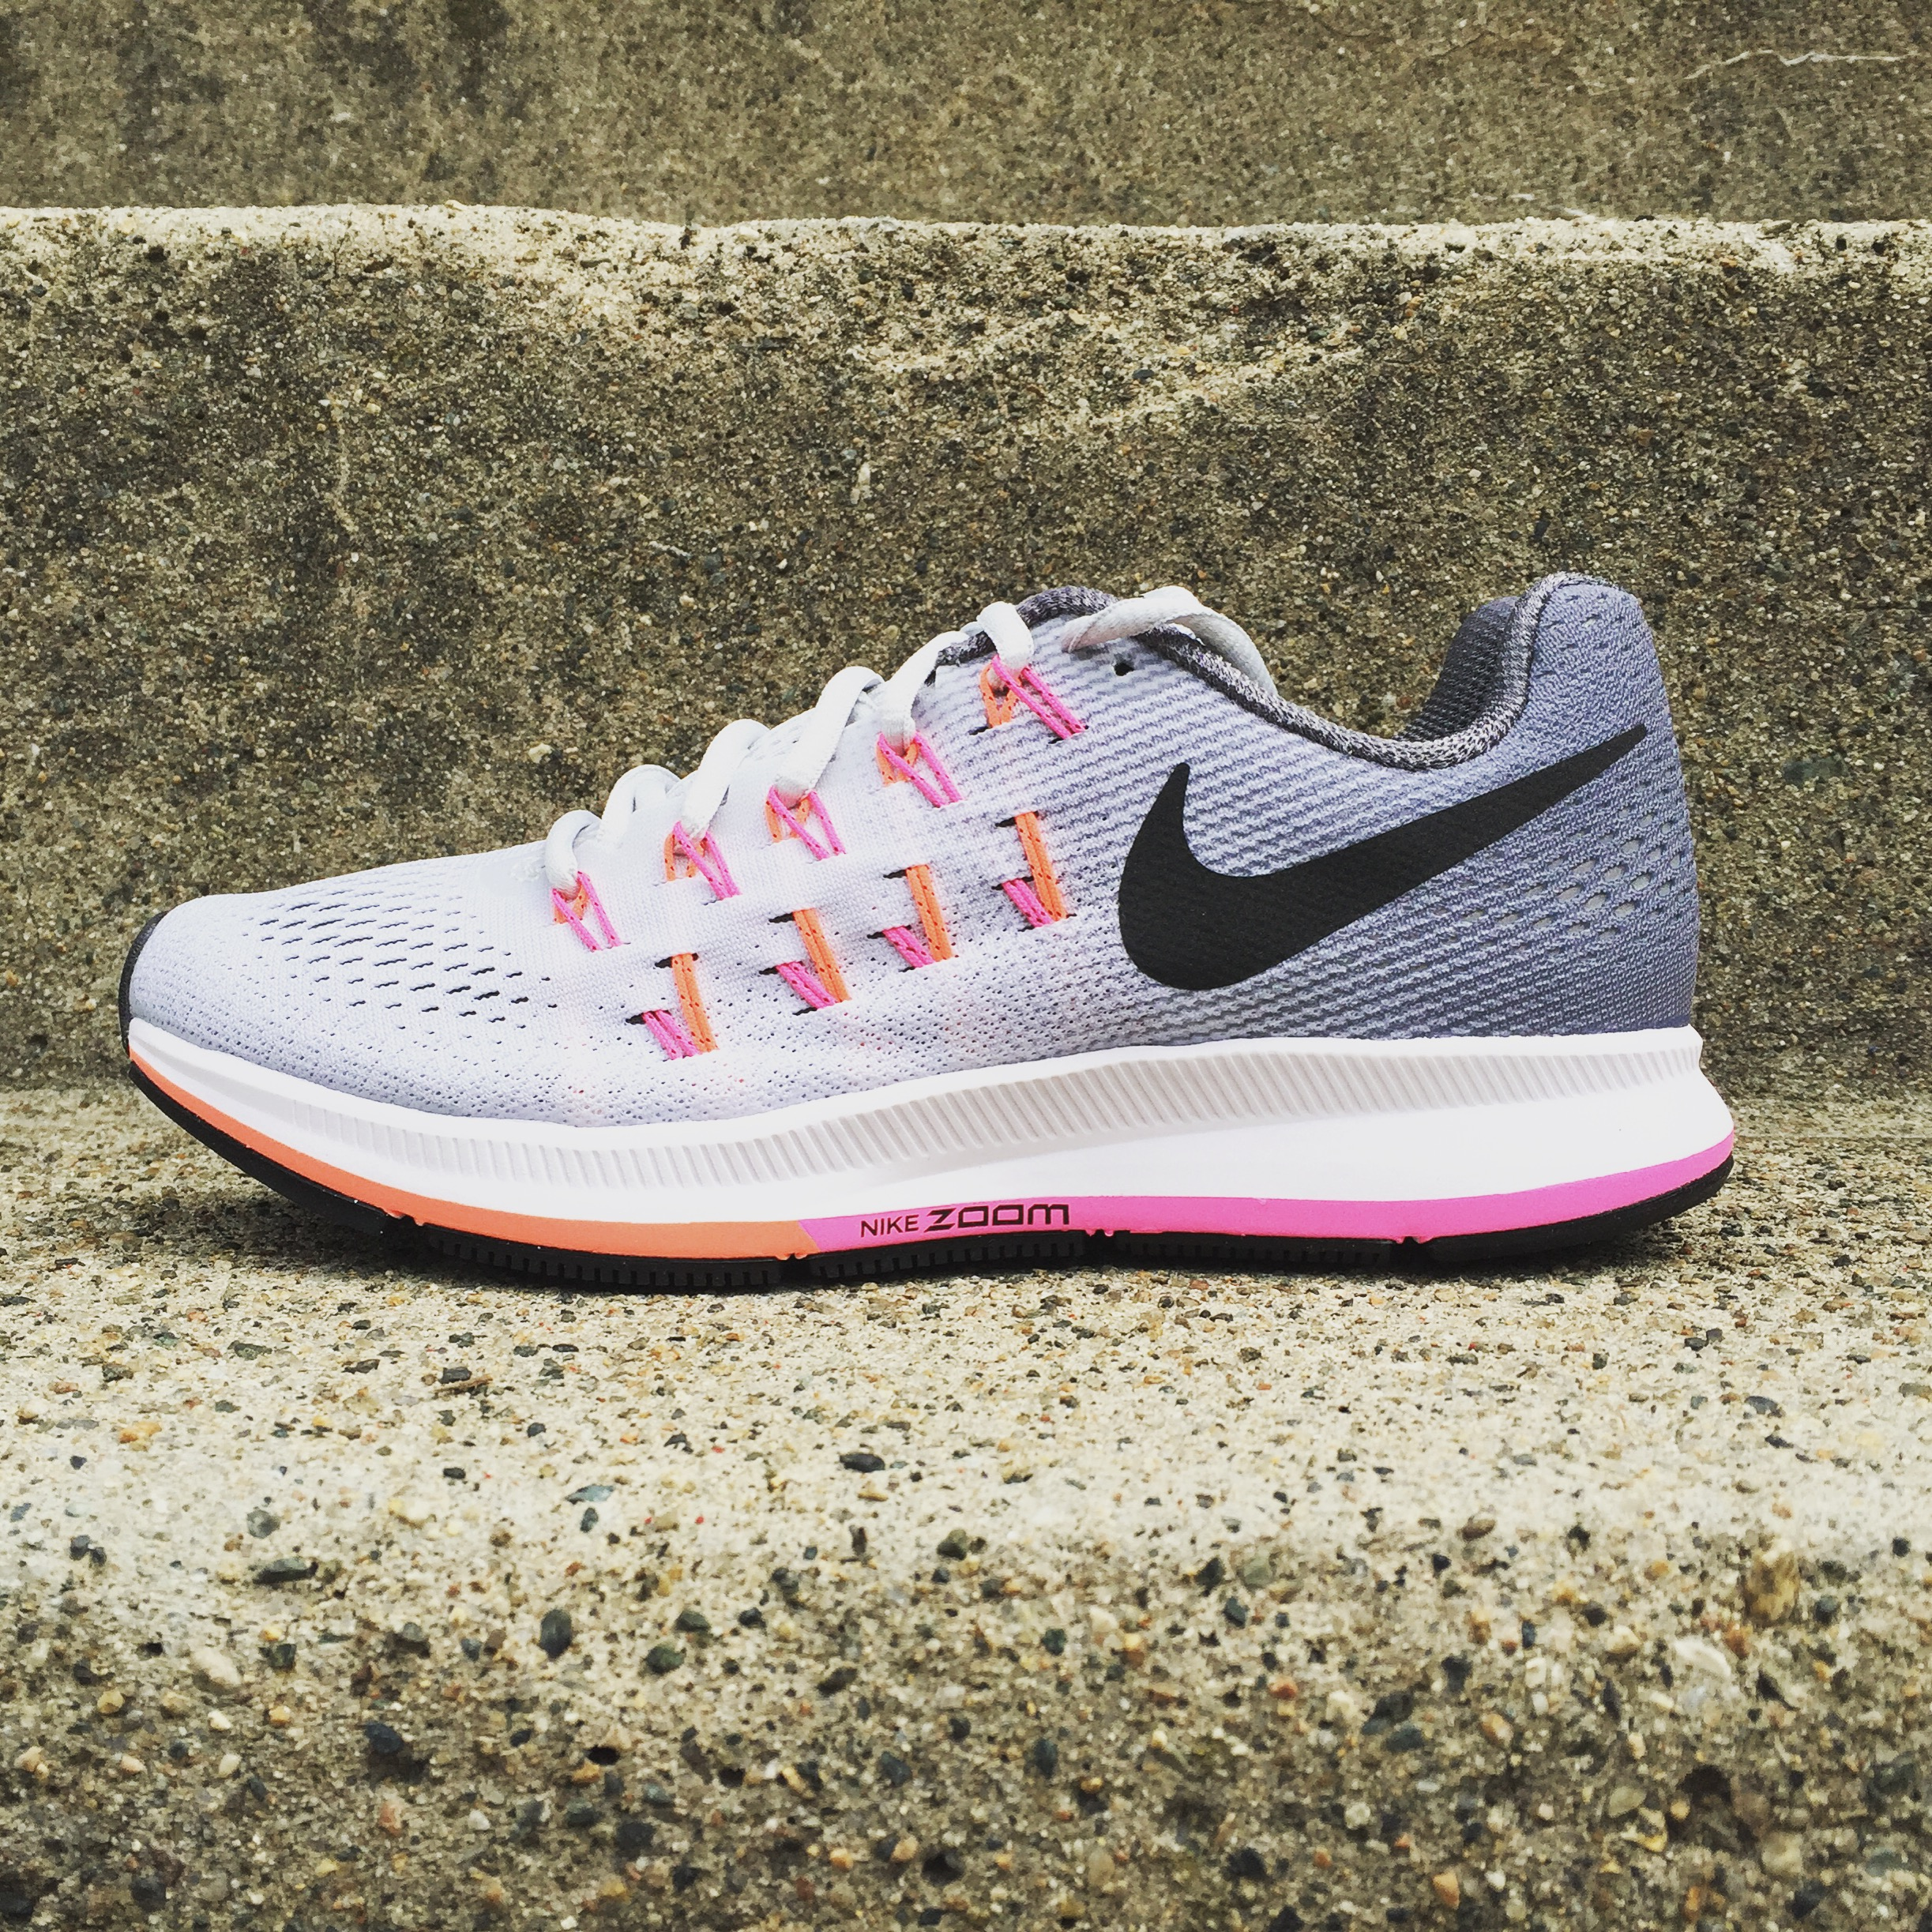 half off f4cc1 0e306 Let me start by saying every year I think Nike is going to ruin the  Pegasus. For the better part of a decade I have been running most of my  miles in ...